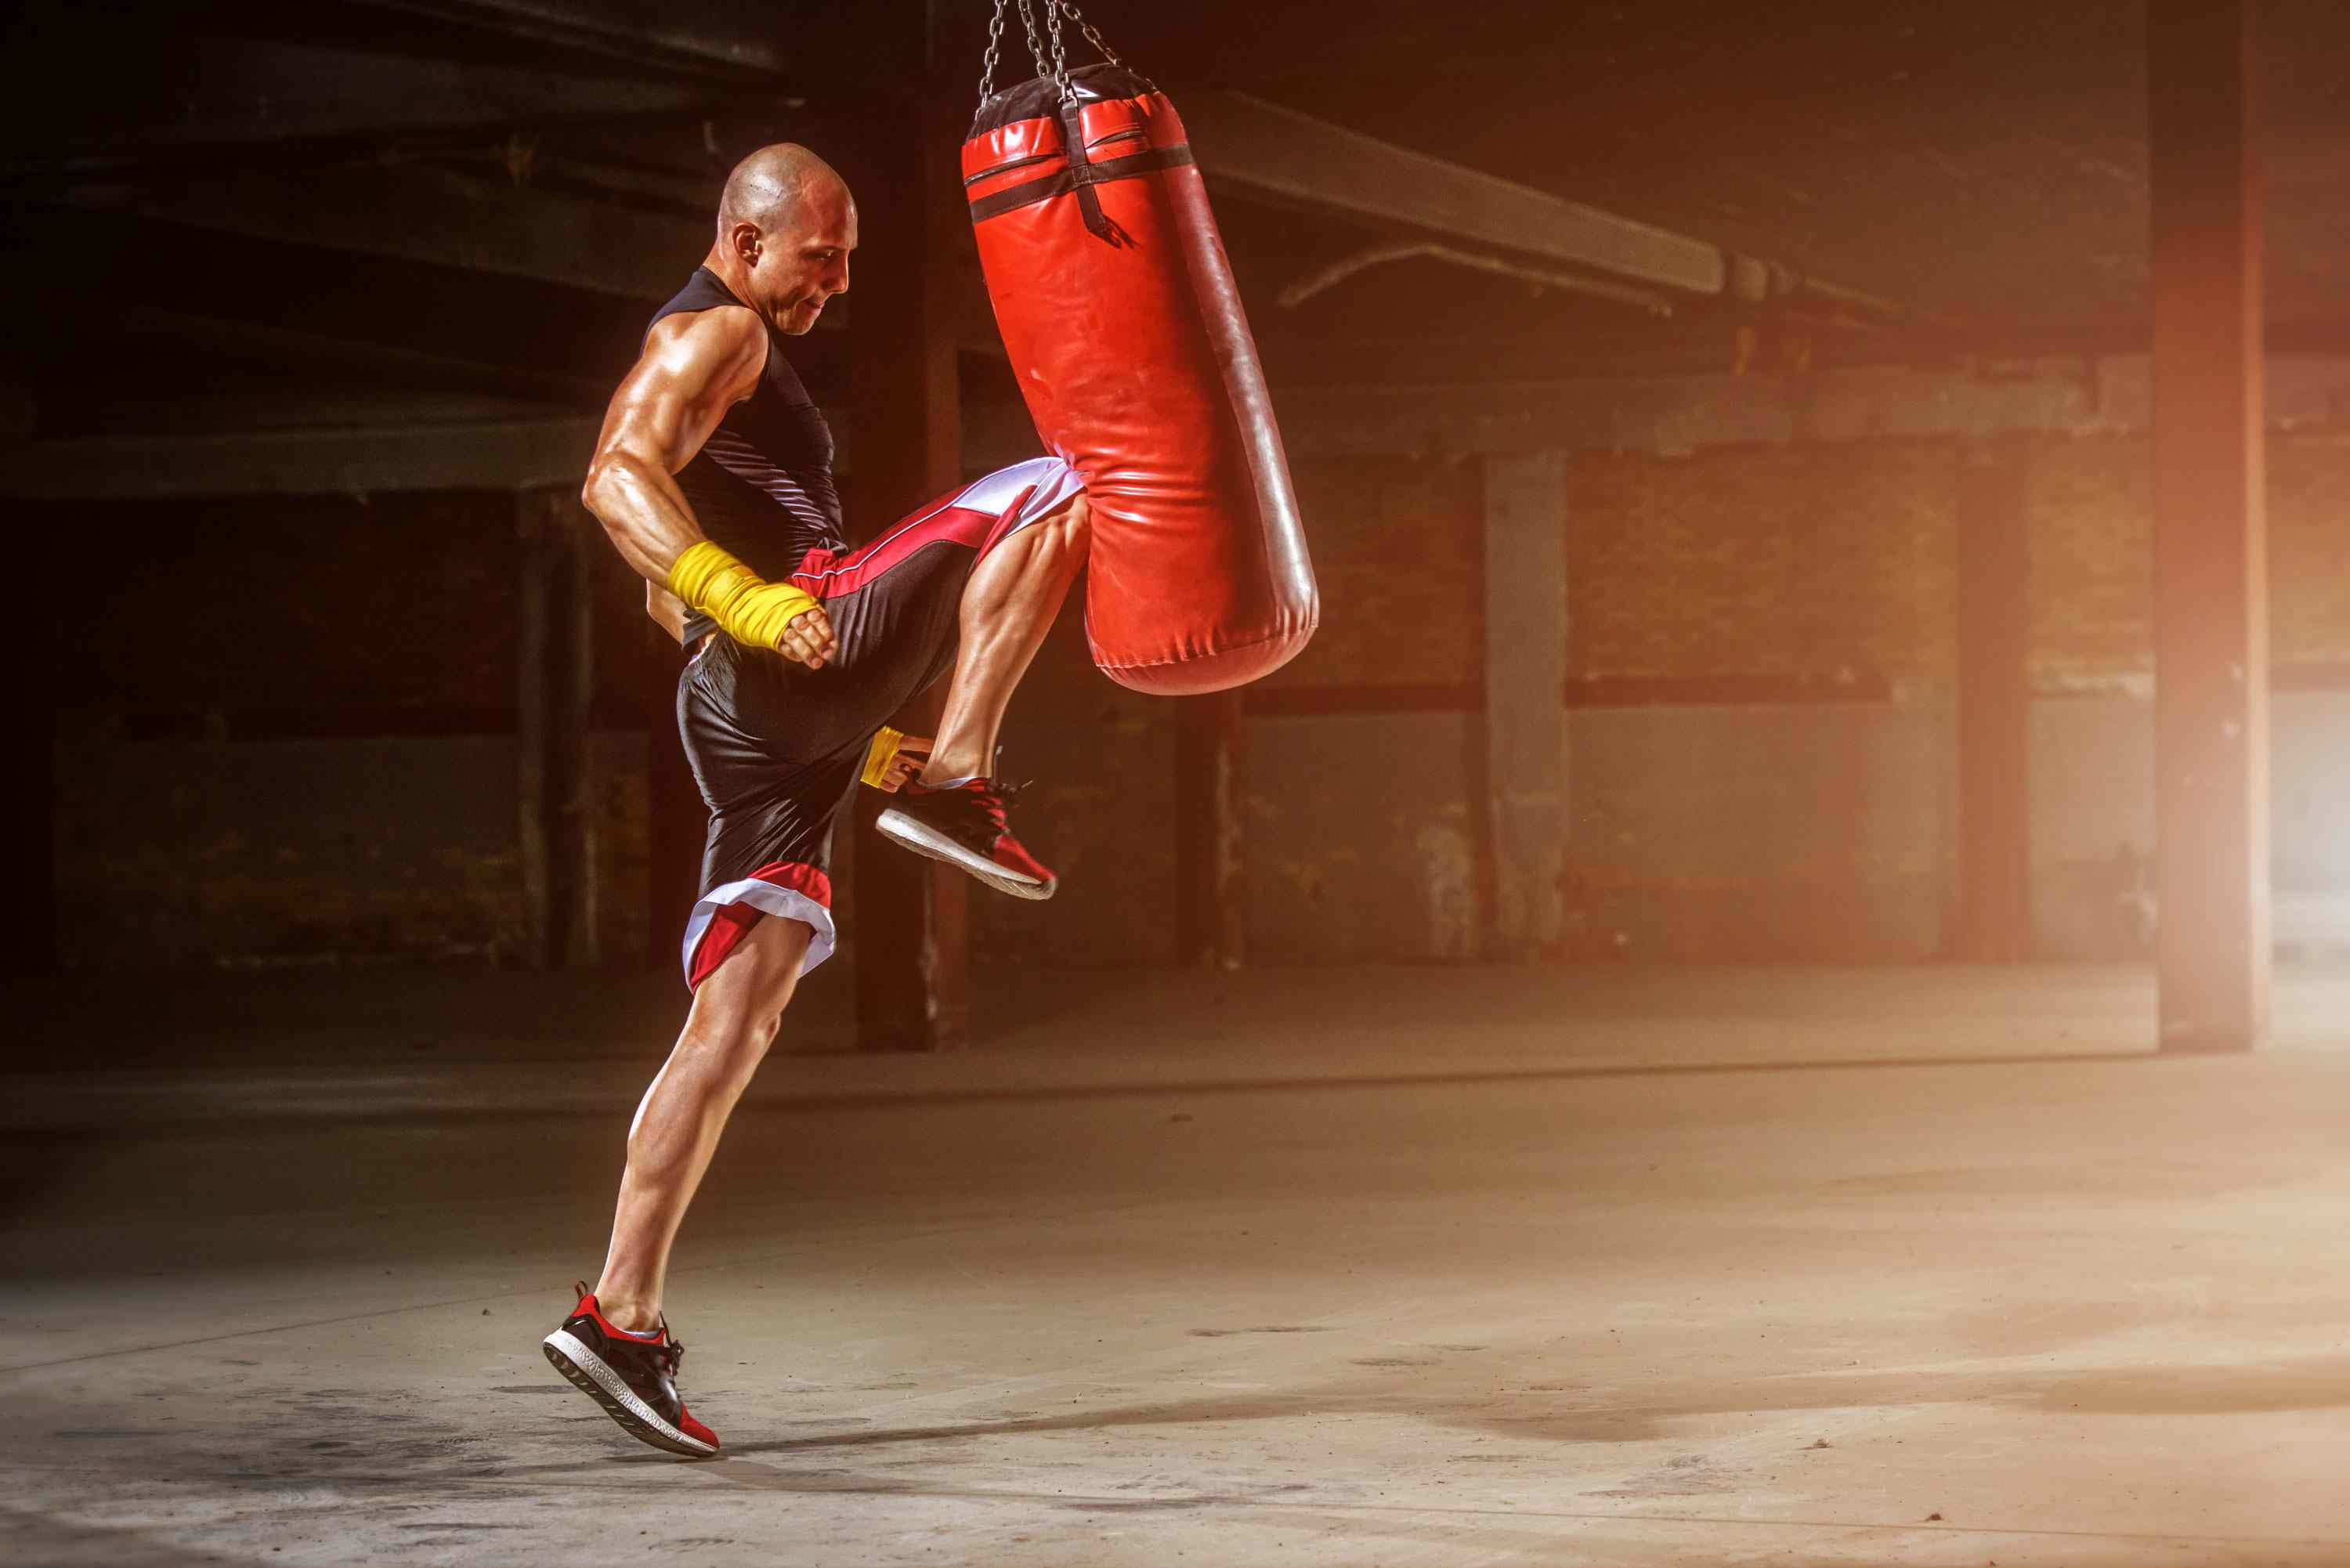 The MMA Workout You Can Do at Home